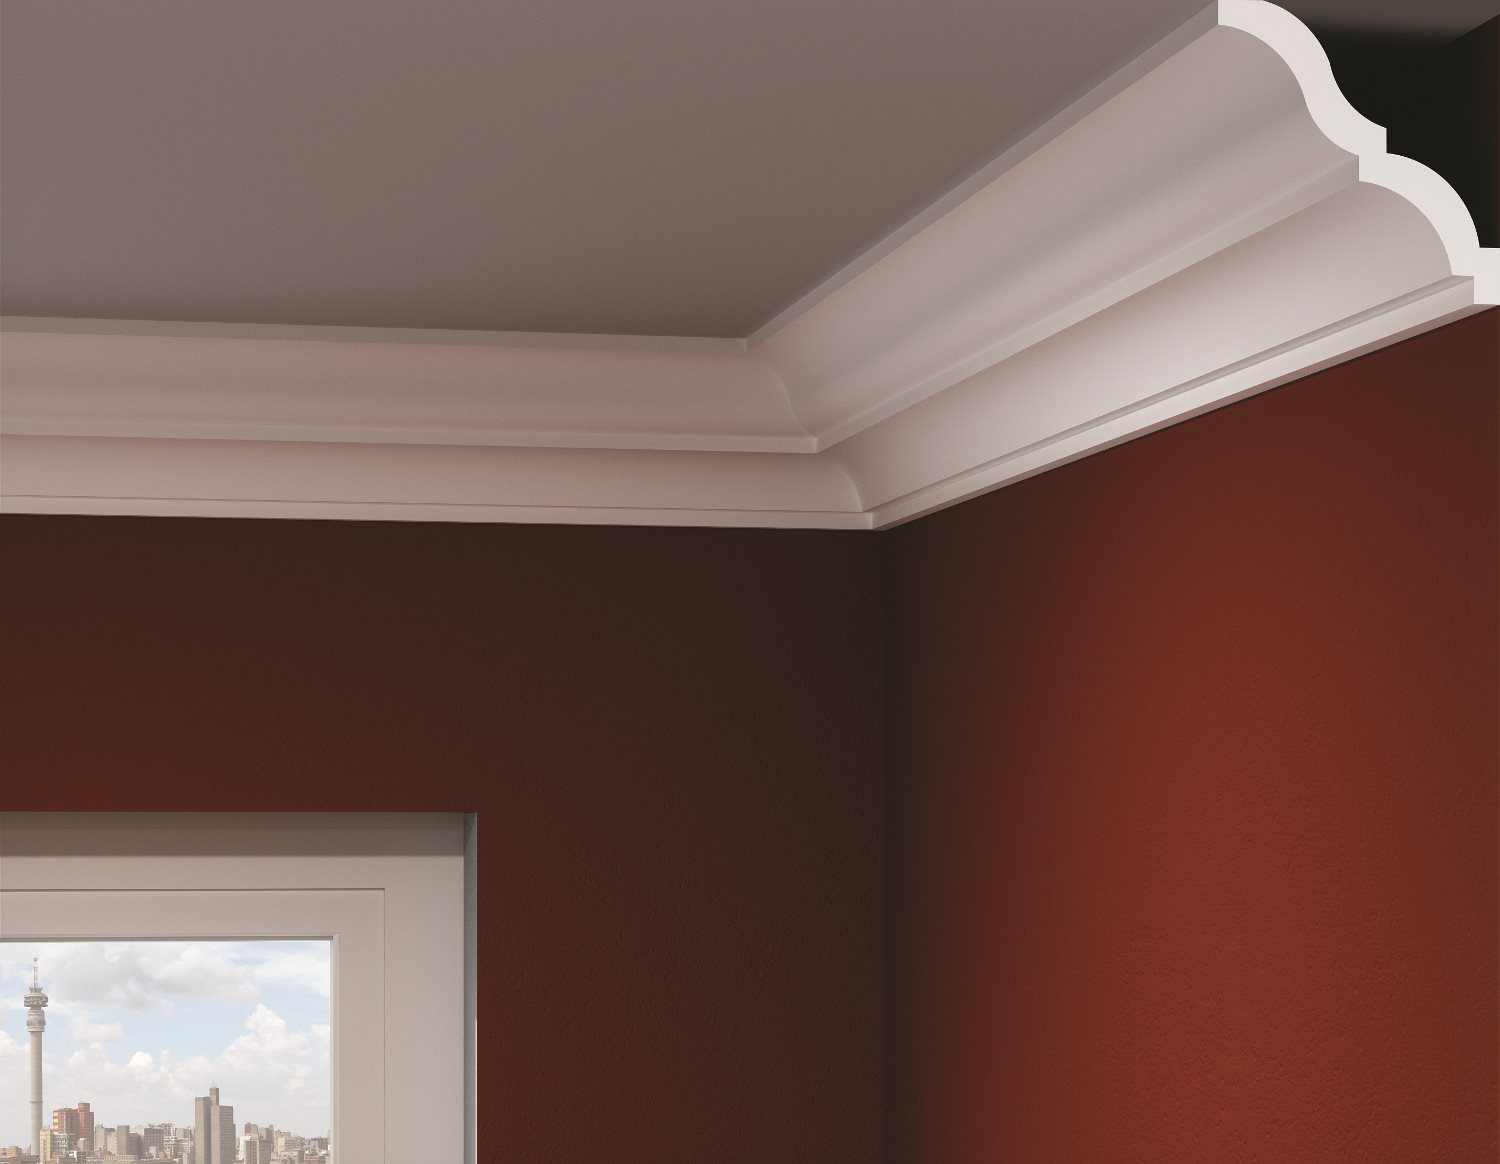 The benefits of choosing polystyrene cornices